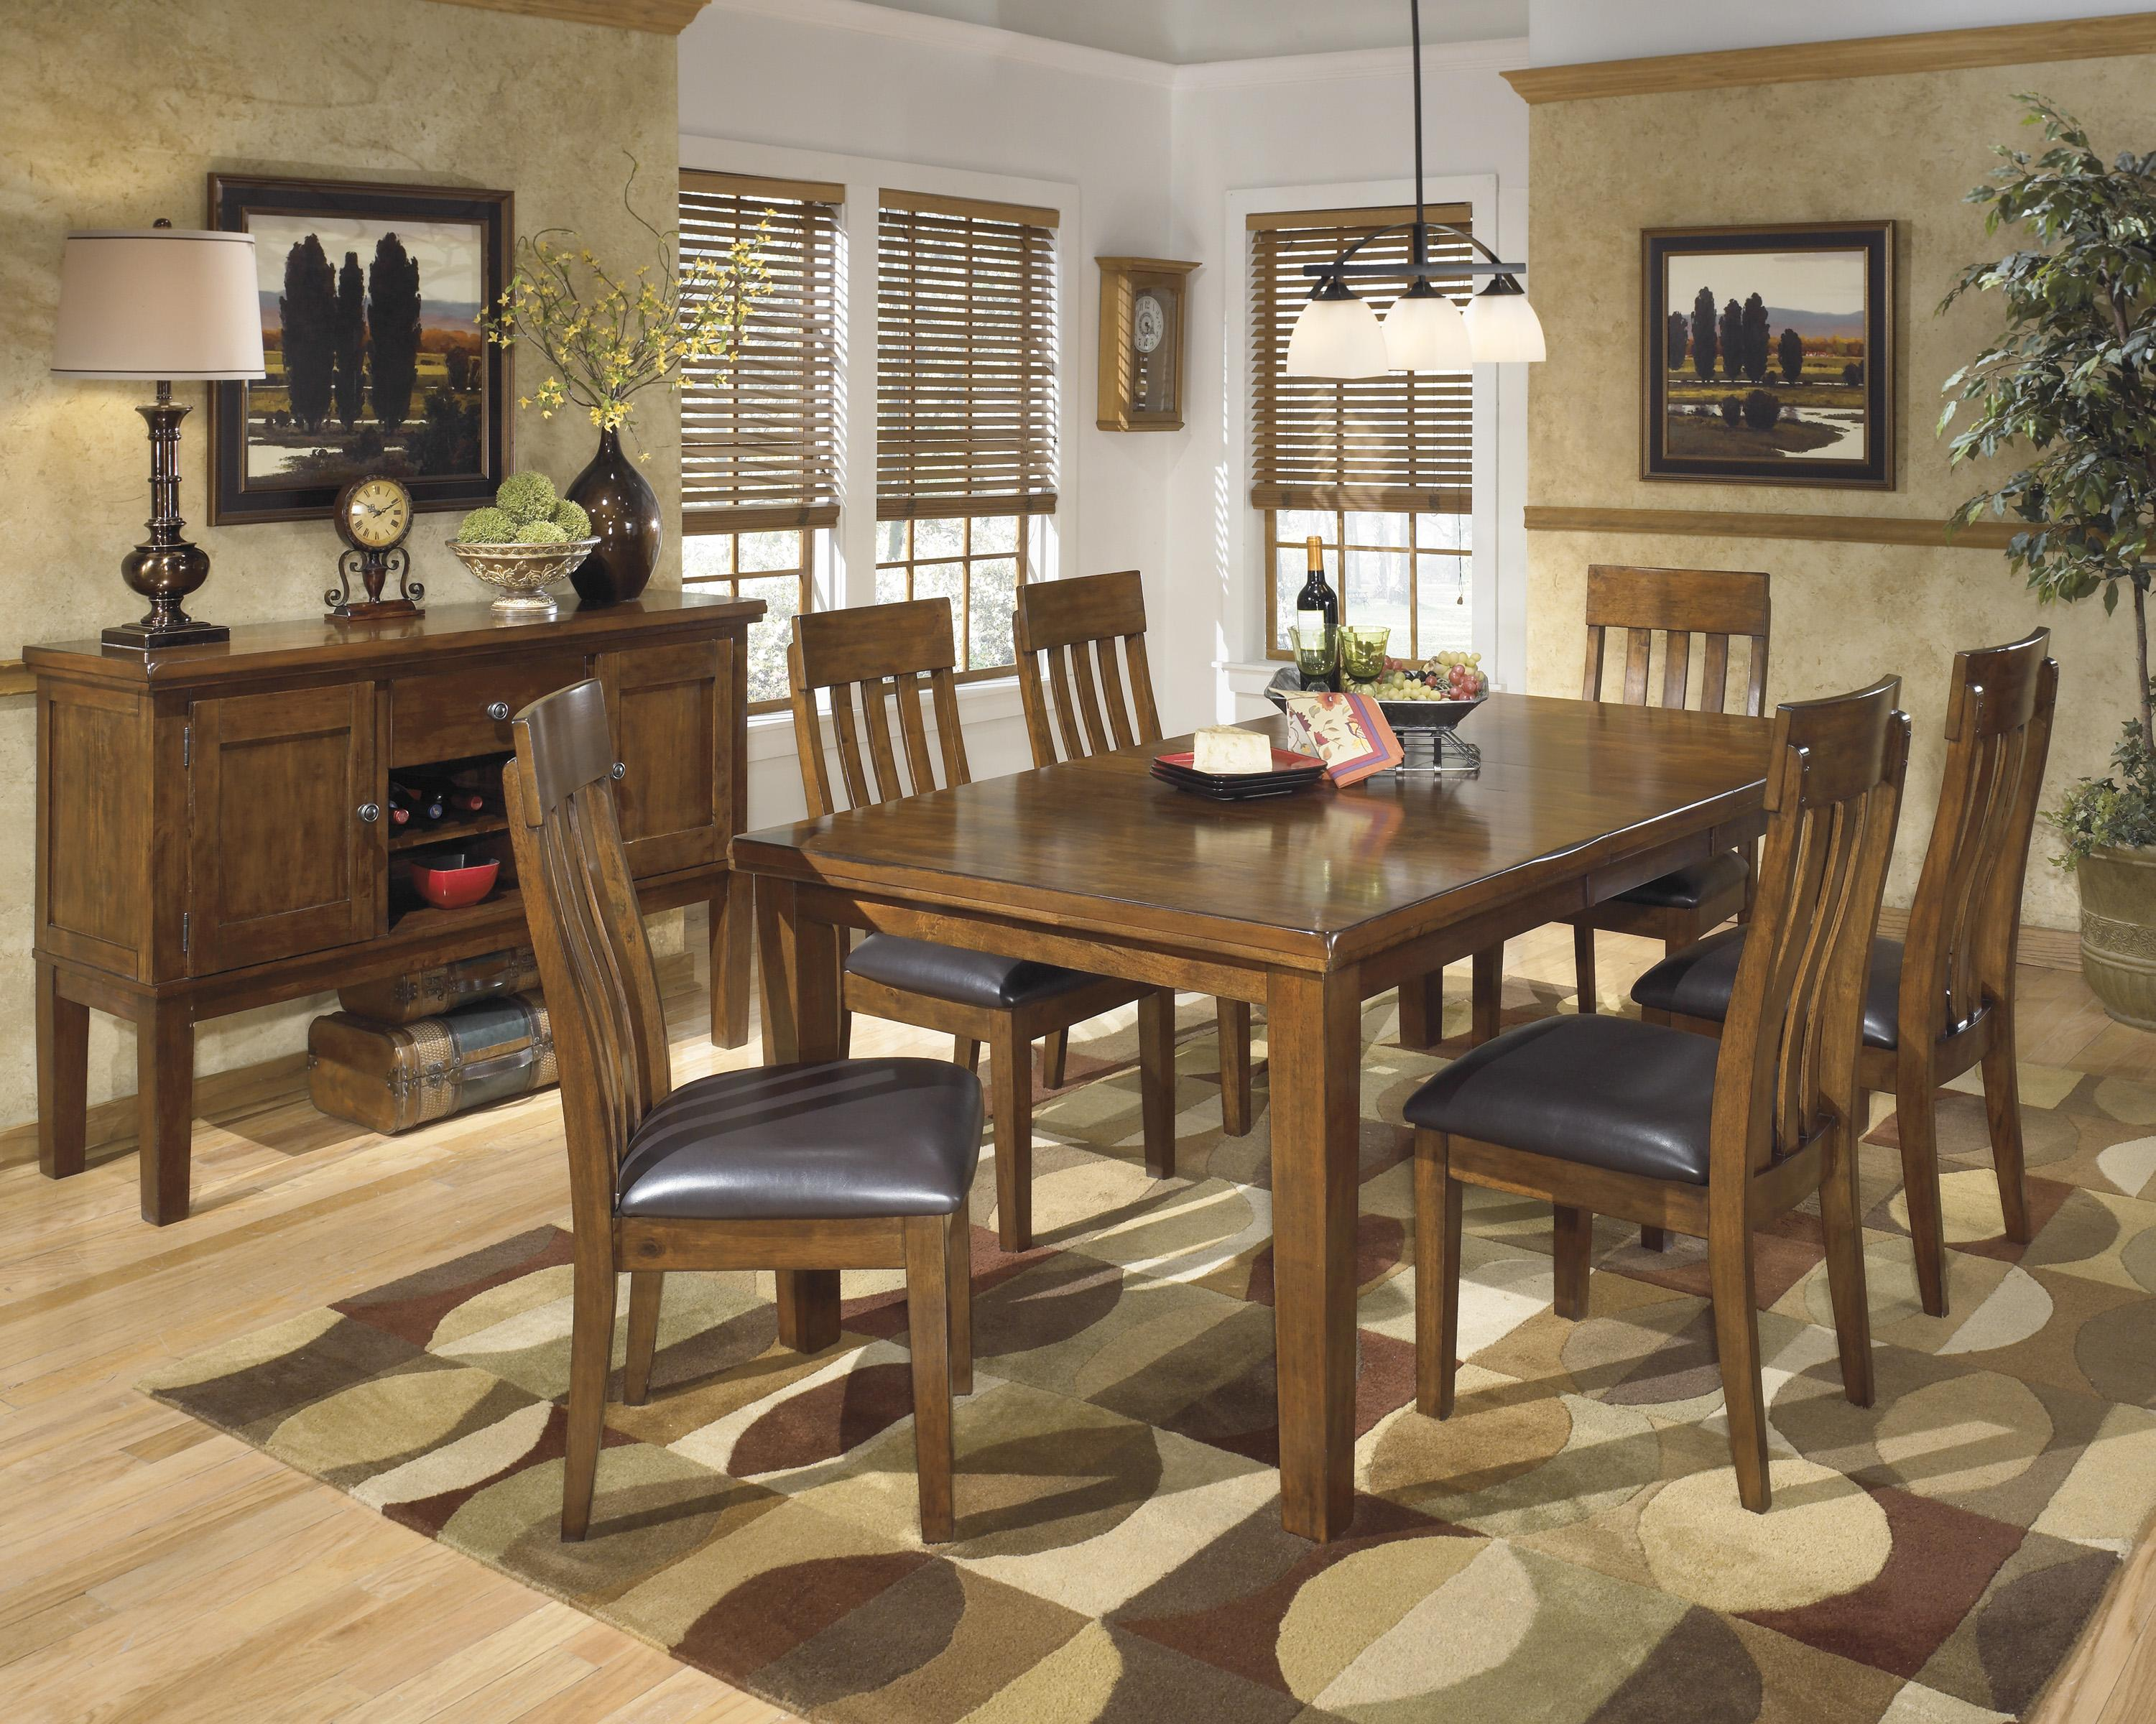 Signature Design by Ashley Ralene Casual Dining Room Group - Item Number: D594 Dining Room Group 2